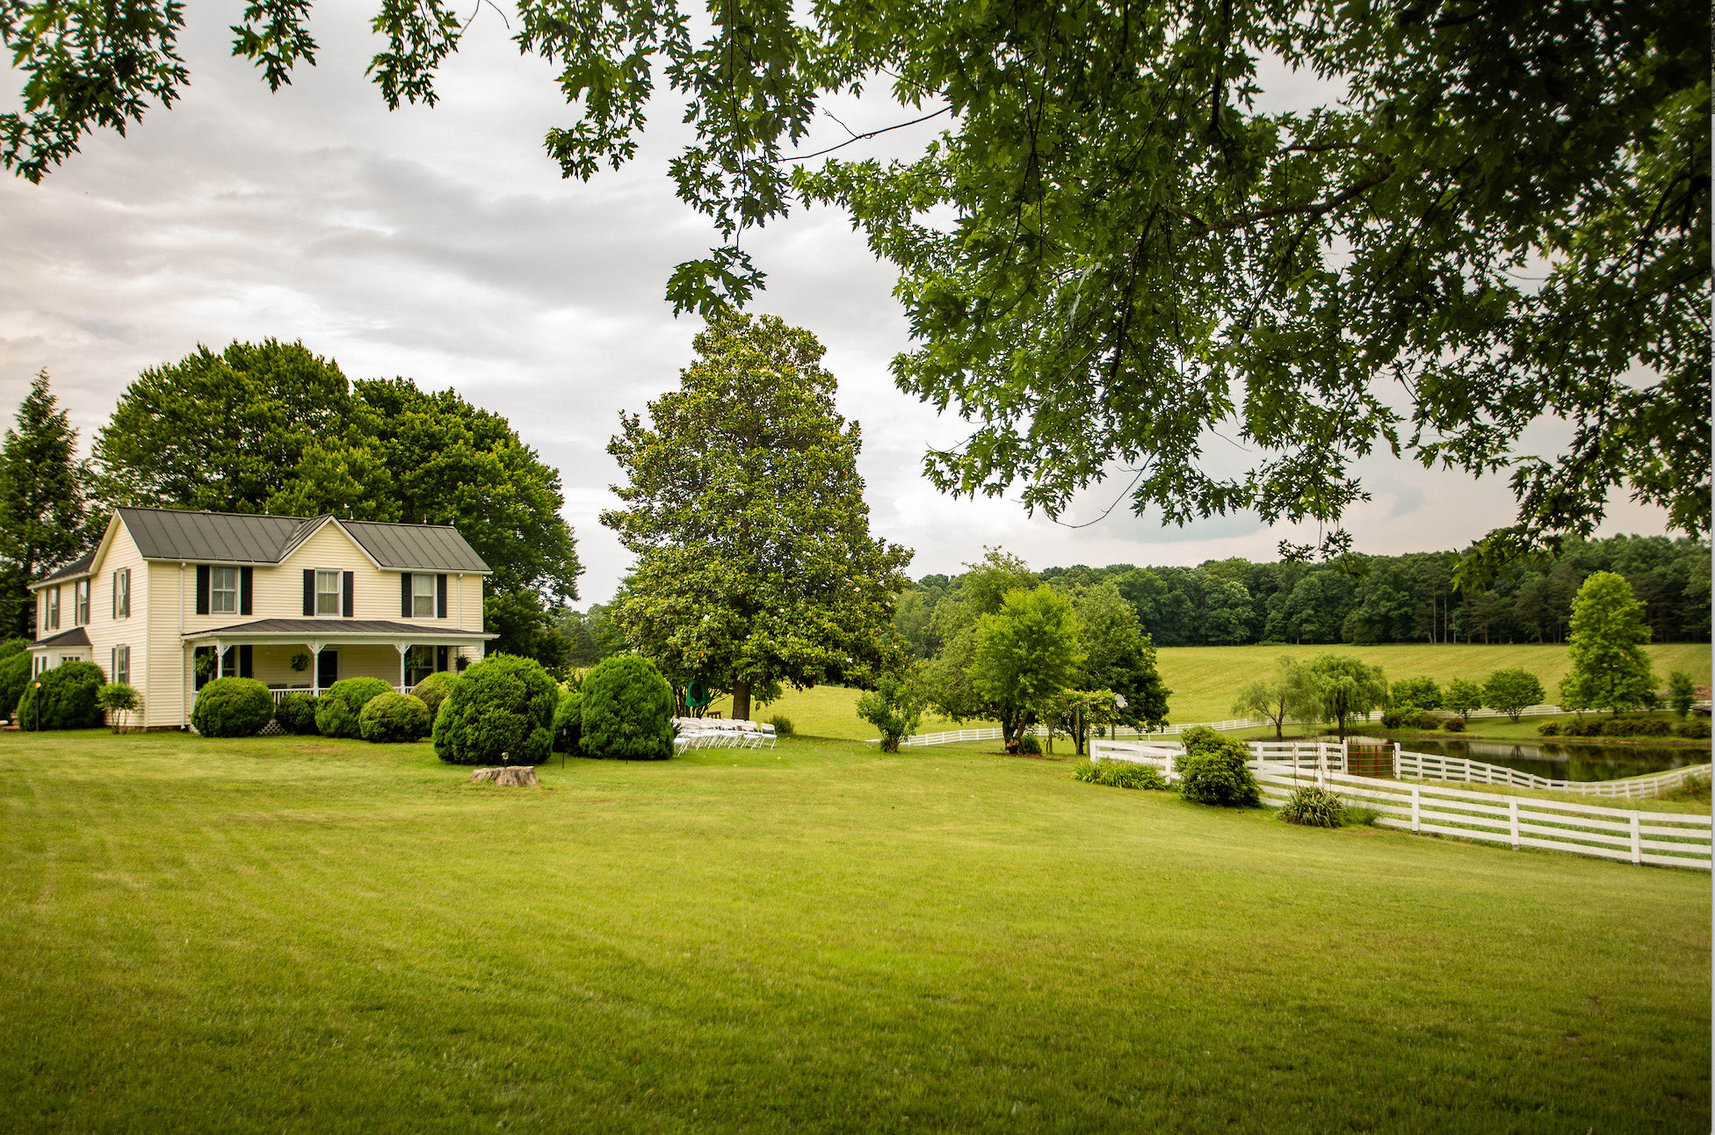 Image for 4 BR/2 BA Farm House, Barns, Fencing & 2 Ponds on 57.5 +/- Acres in Fauquier County, VA--SELLING to the HIGHEST BIDDER!!